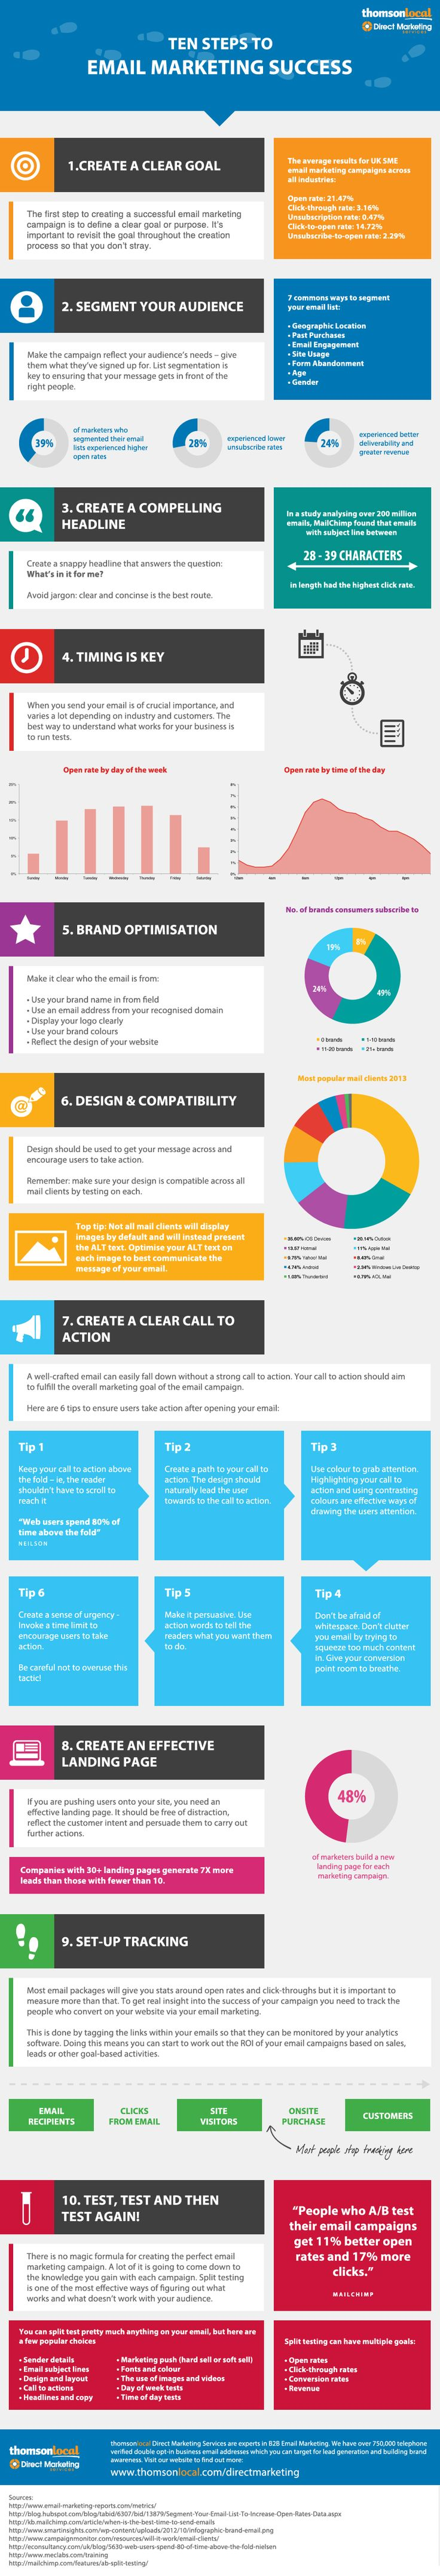 10-Steps-to-Email-Marketing-Success.jpg (900×5270)